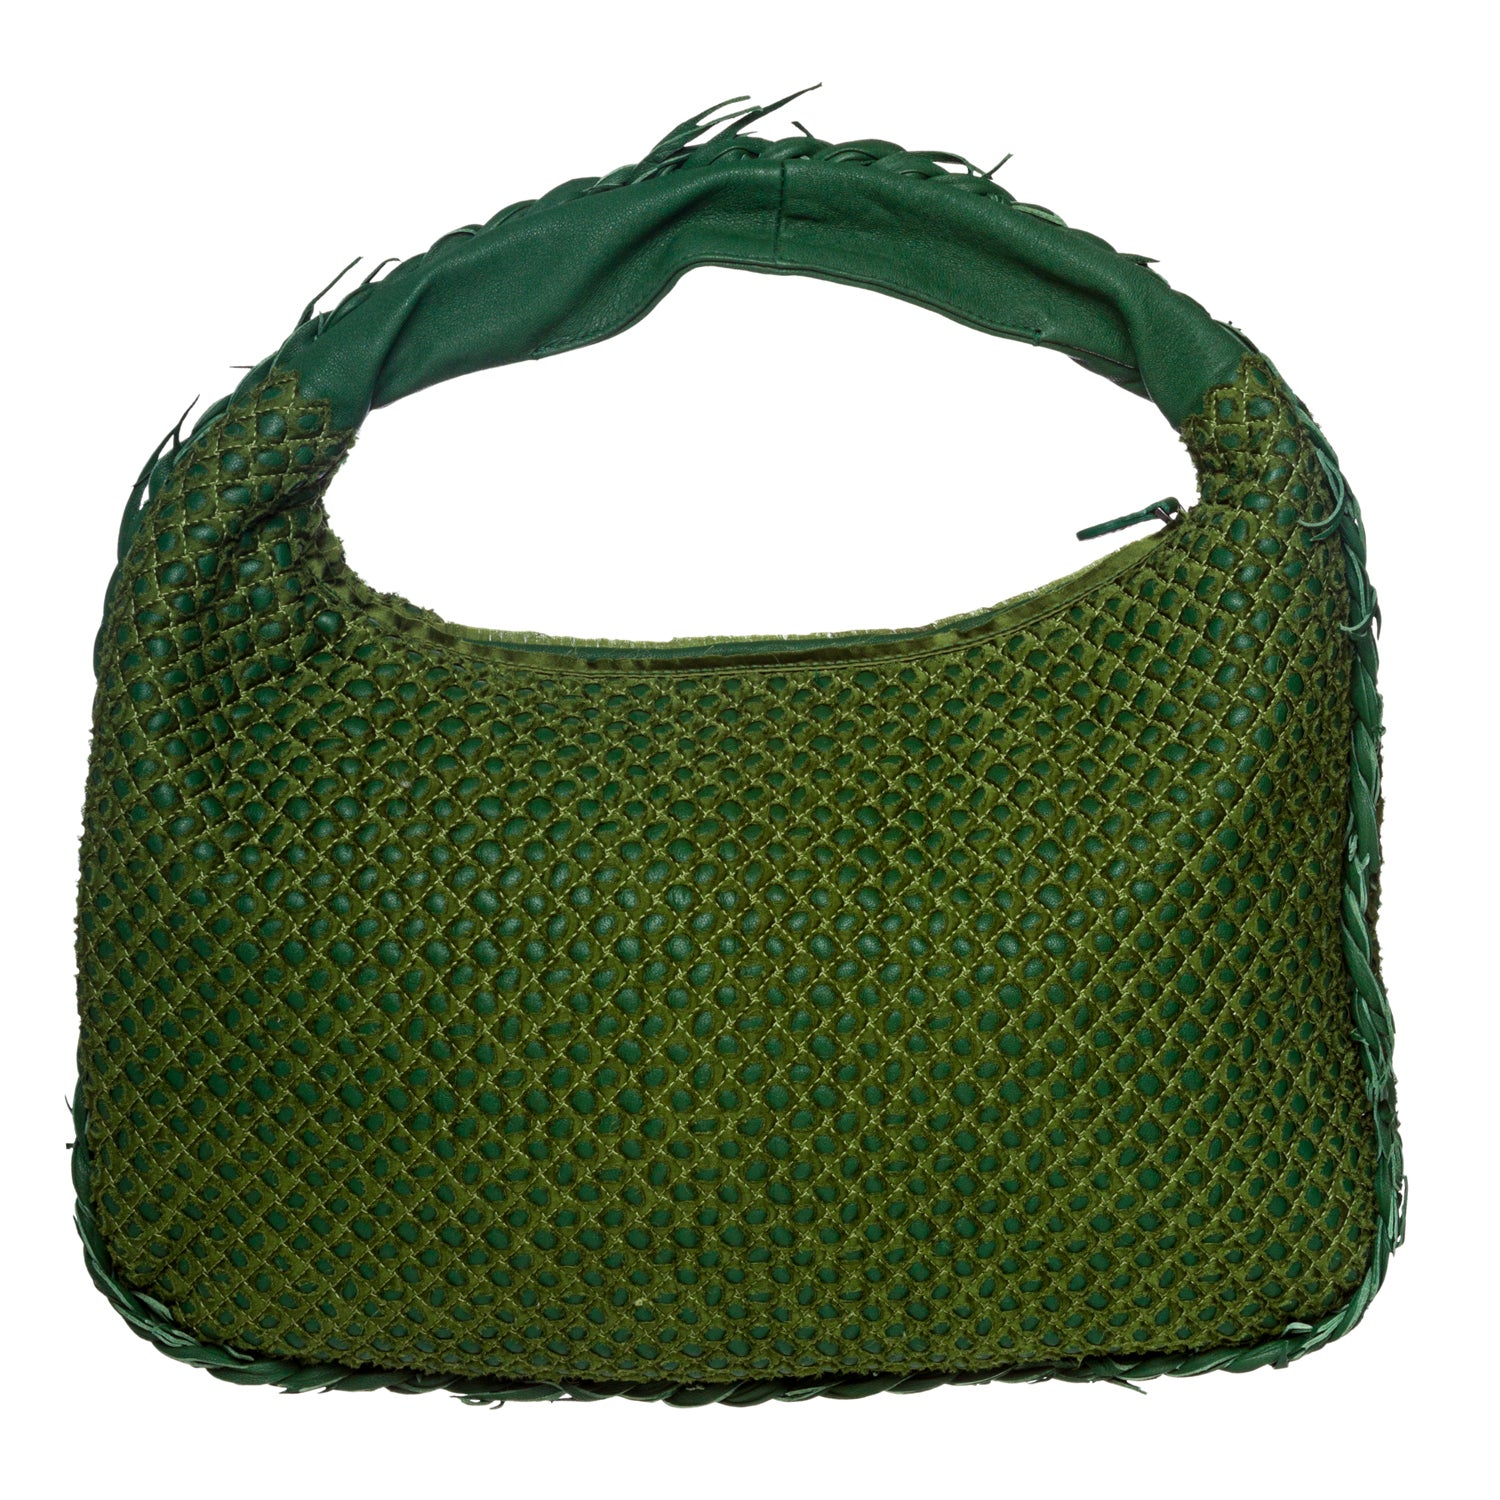 Bottega Veneta Green Leather/Textured-cotton-overlay Designer Hobo Bag